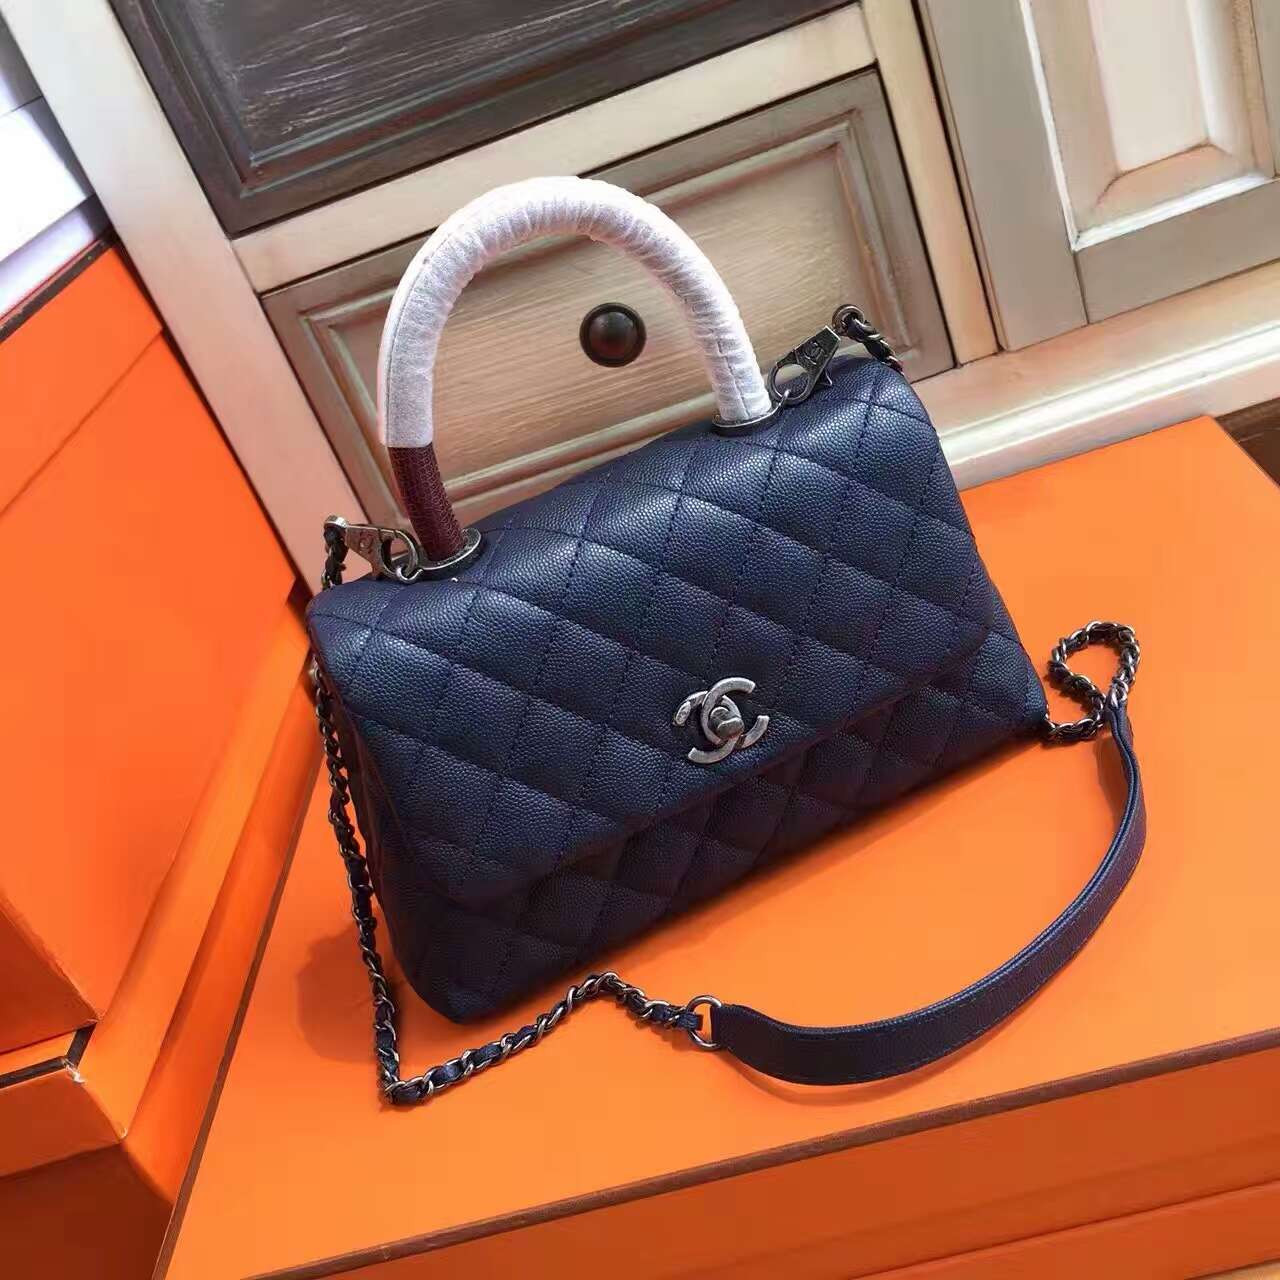 82c807e53774 Chanel Blue Calfskin/Lizard Coco Handle Small Bag - Bella Vita Moda